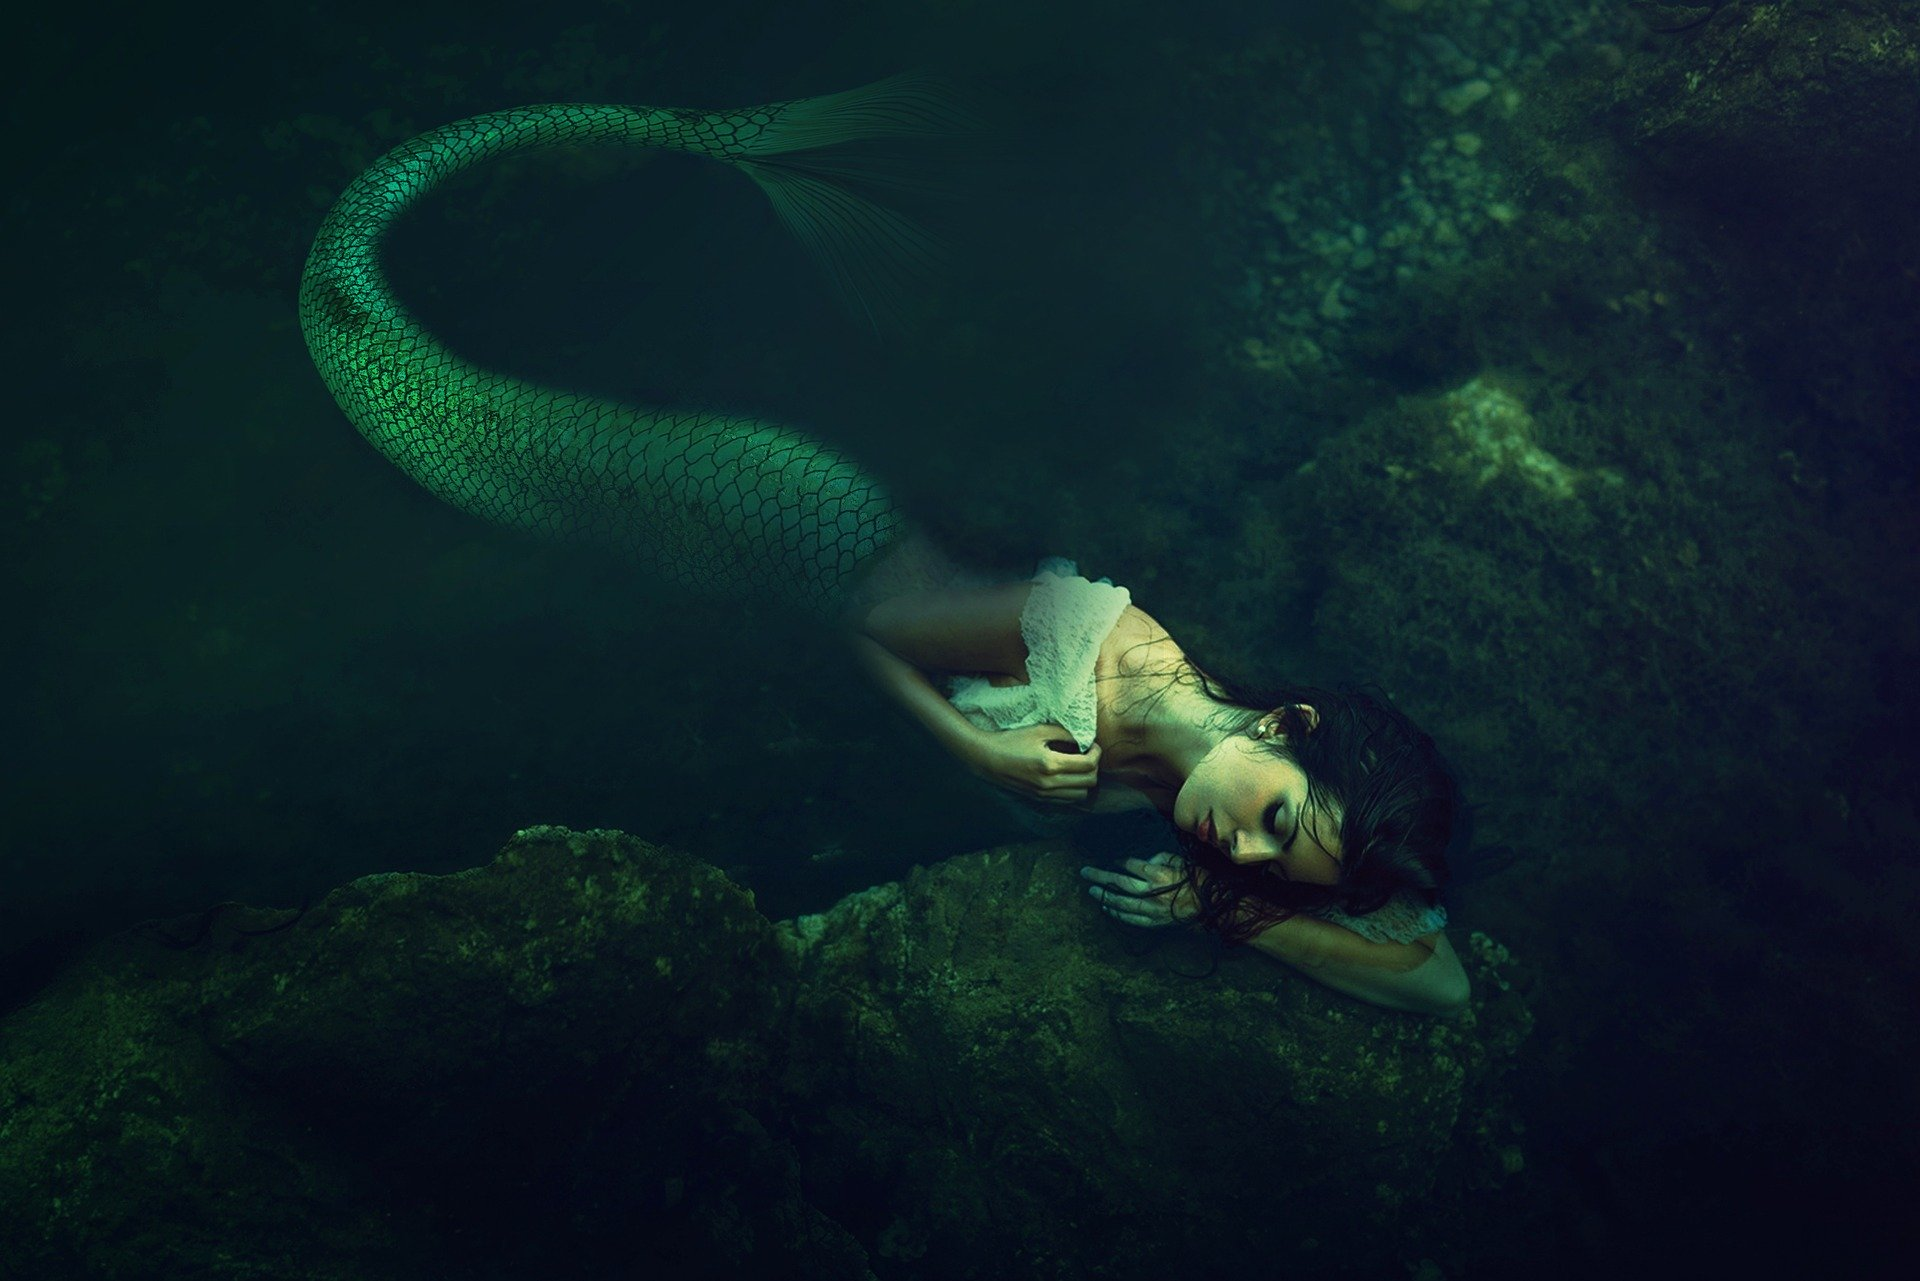 Melancholy mermaid